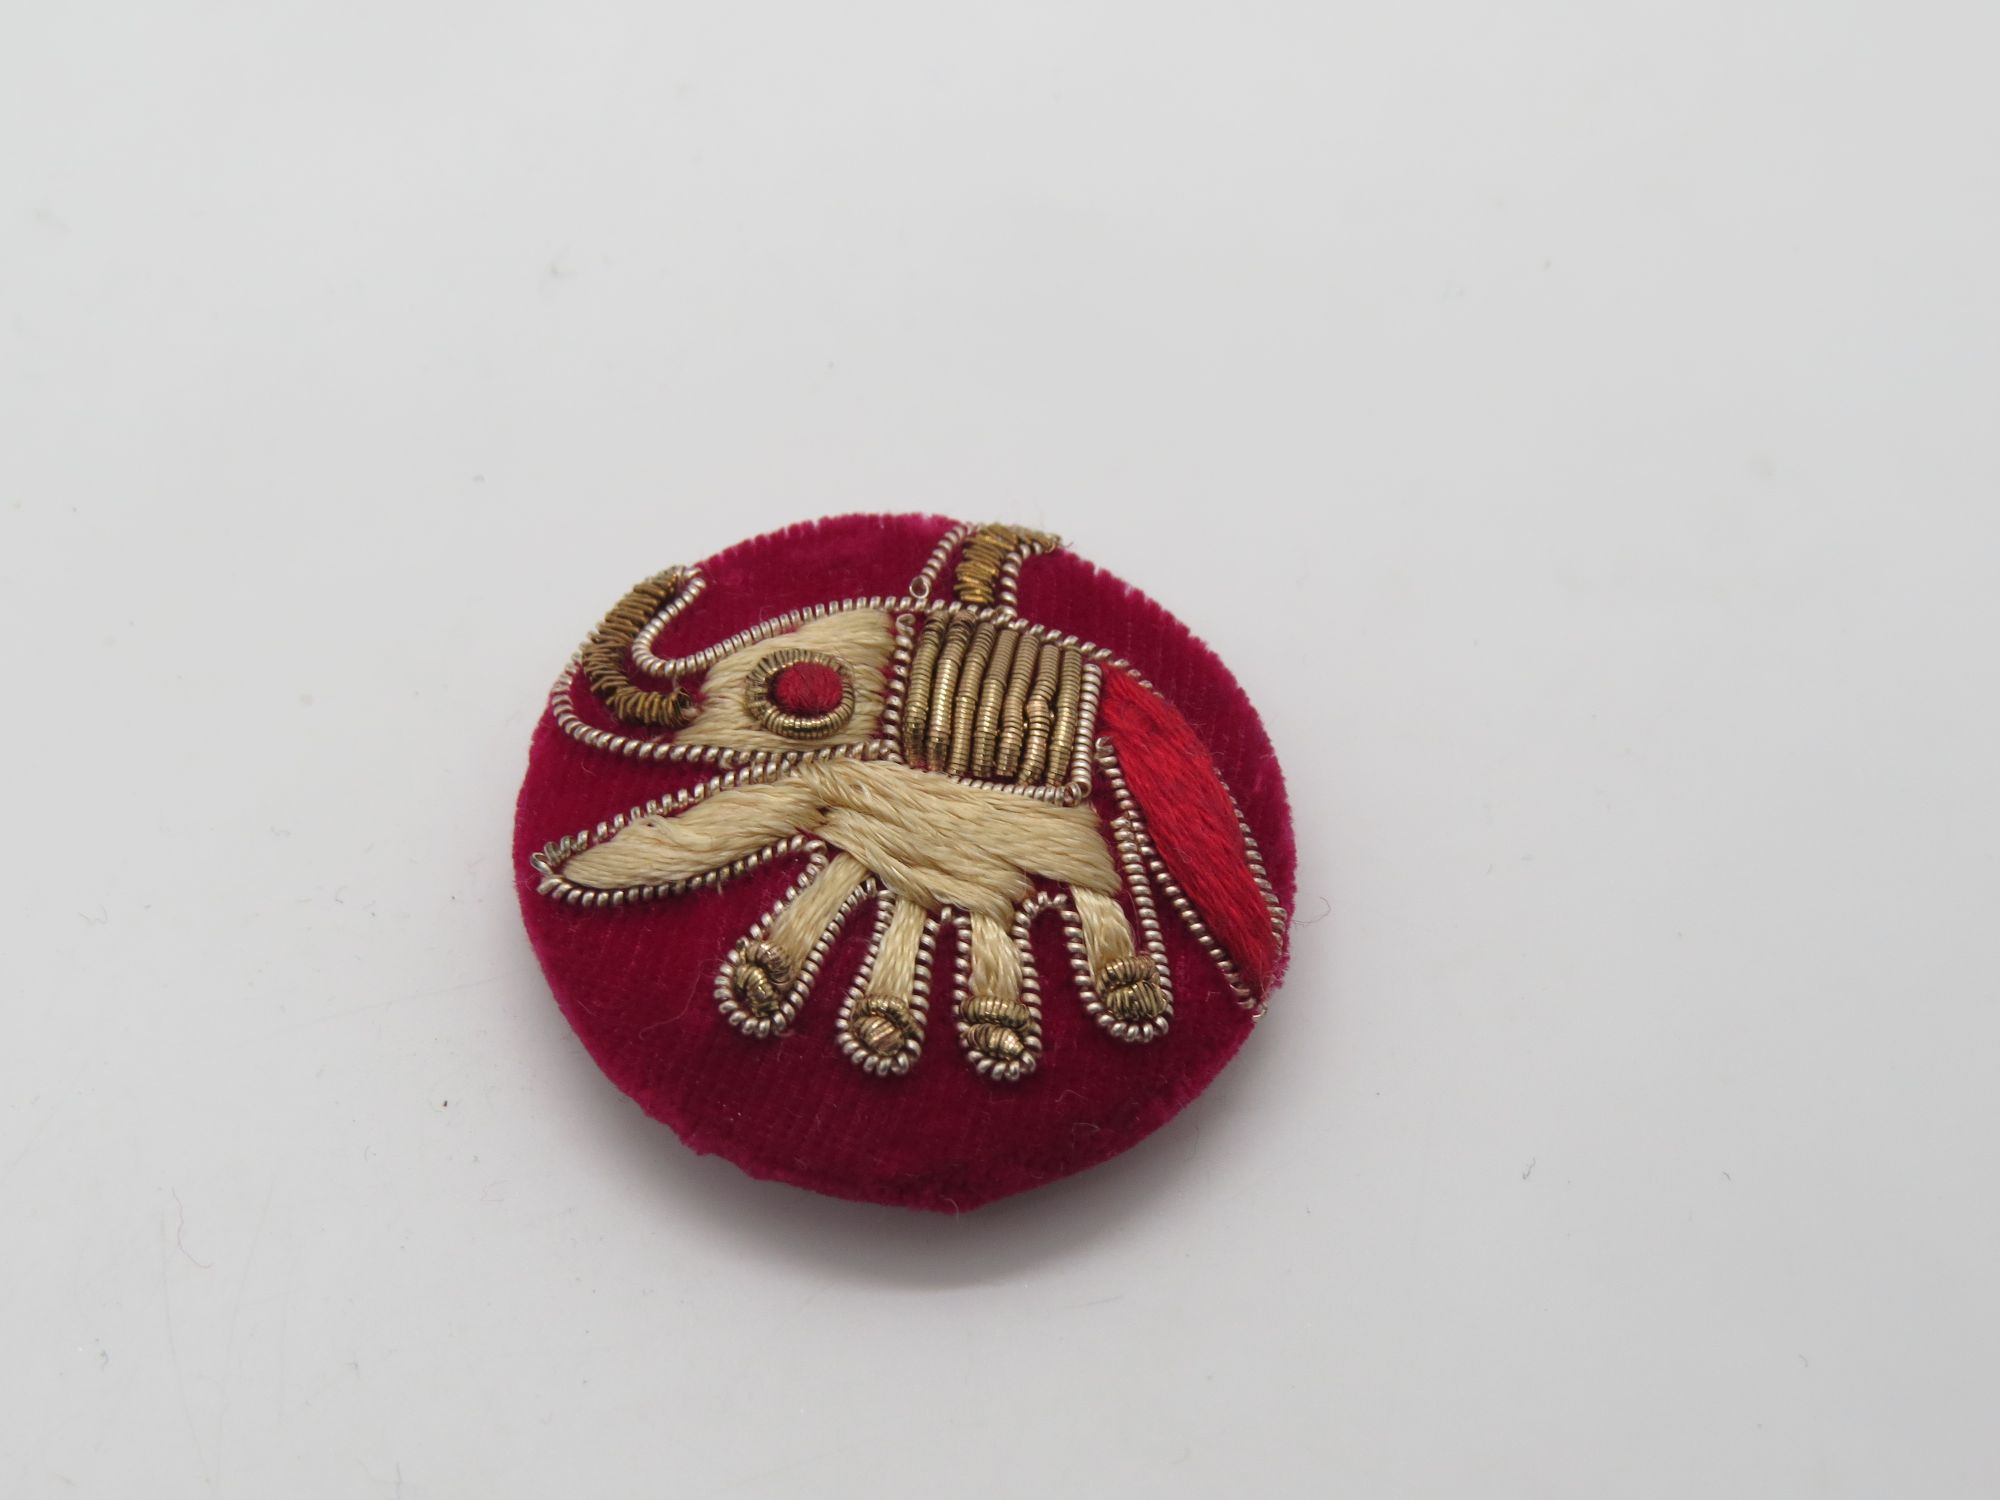 Hand Zardozi Thred Elephant work Embellishment Button Indian Fancy Zari Zardozi Bridesmaids Design Decorative Hand Crafted Fabric Thread Work Sewing Buttons